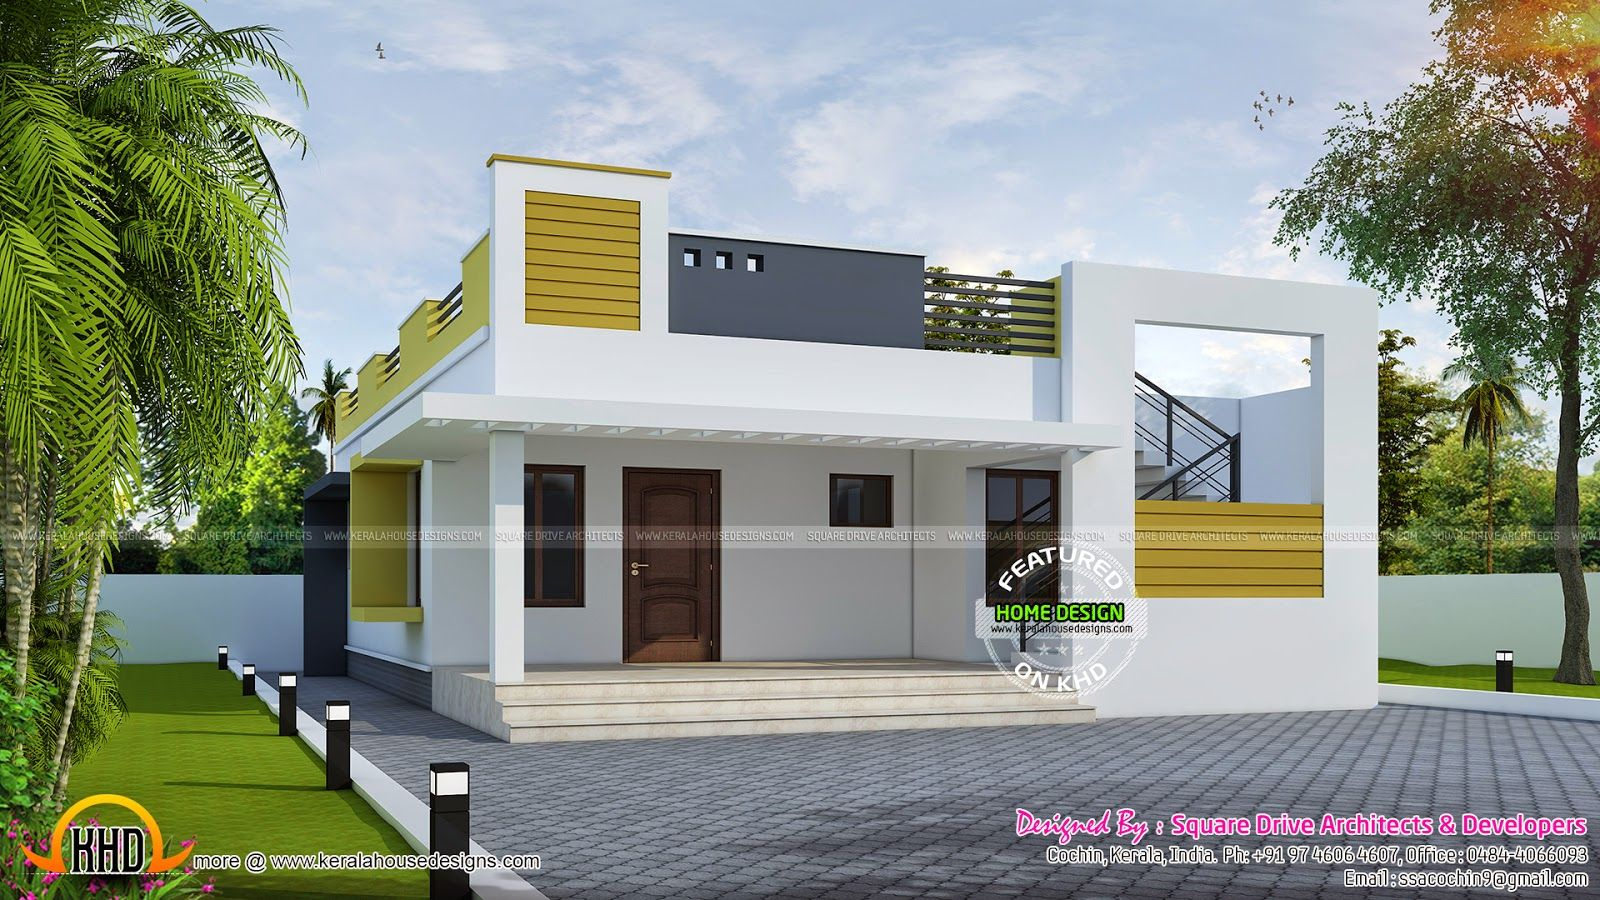 One storied flat house front design cool designs modern also photos of small beautiful and cute bungalow ideal rh pinterest